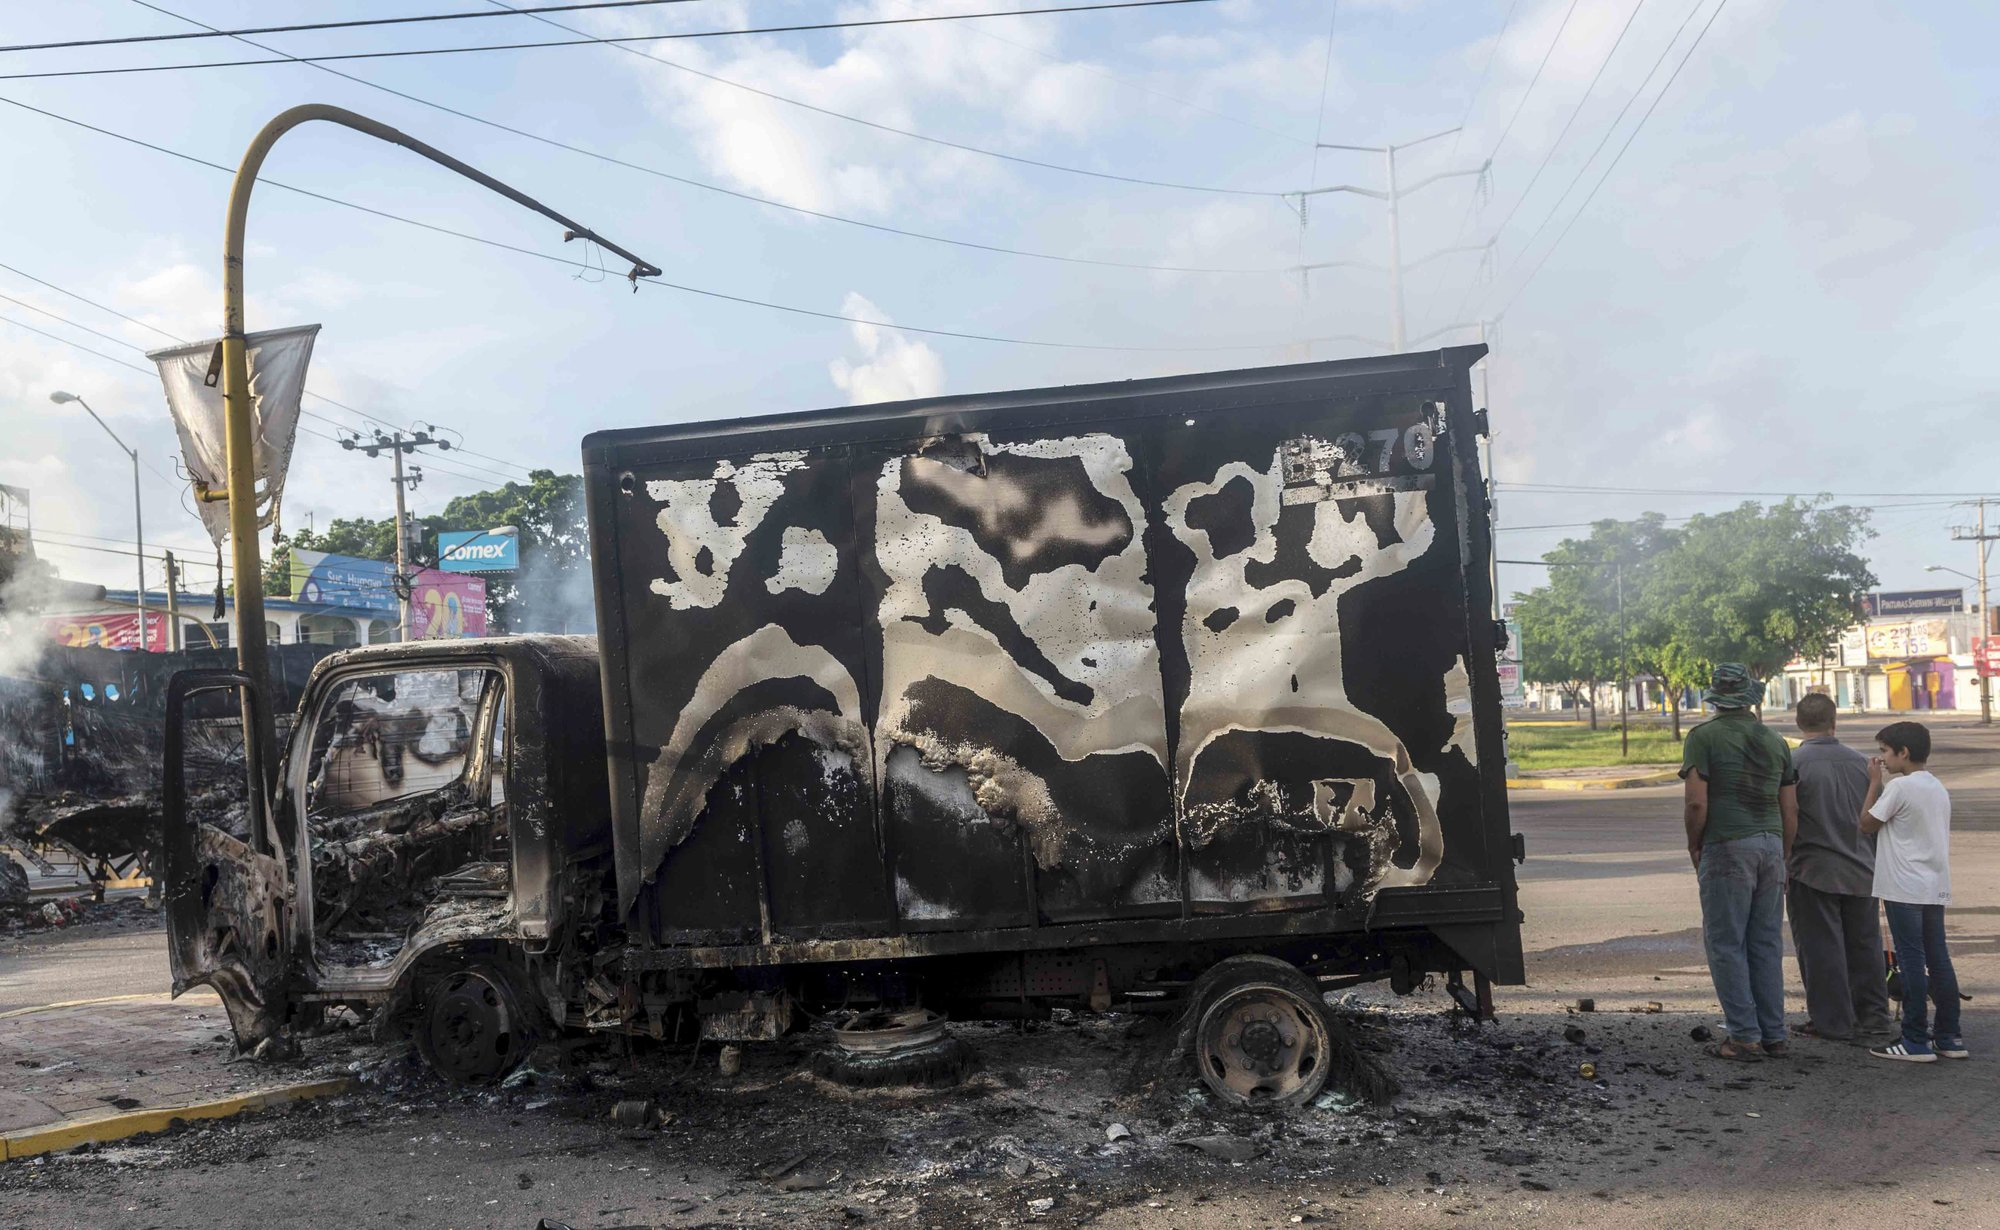 North Mexico city of Culiacan cleans up after cartel fight